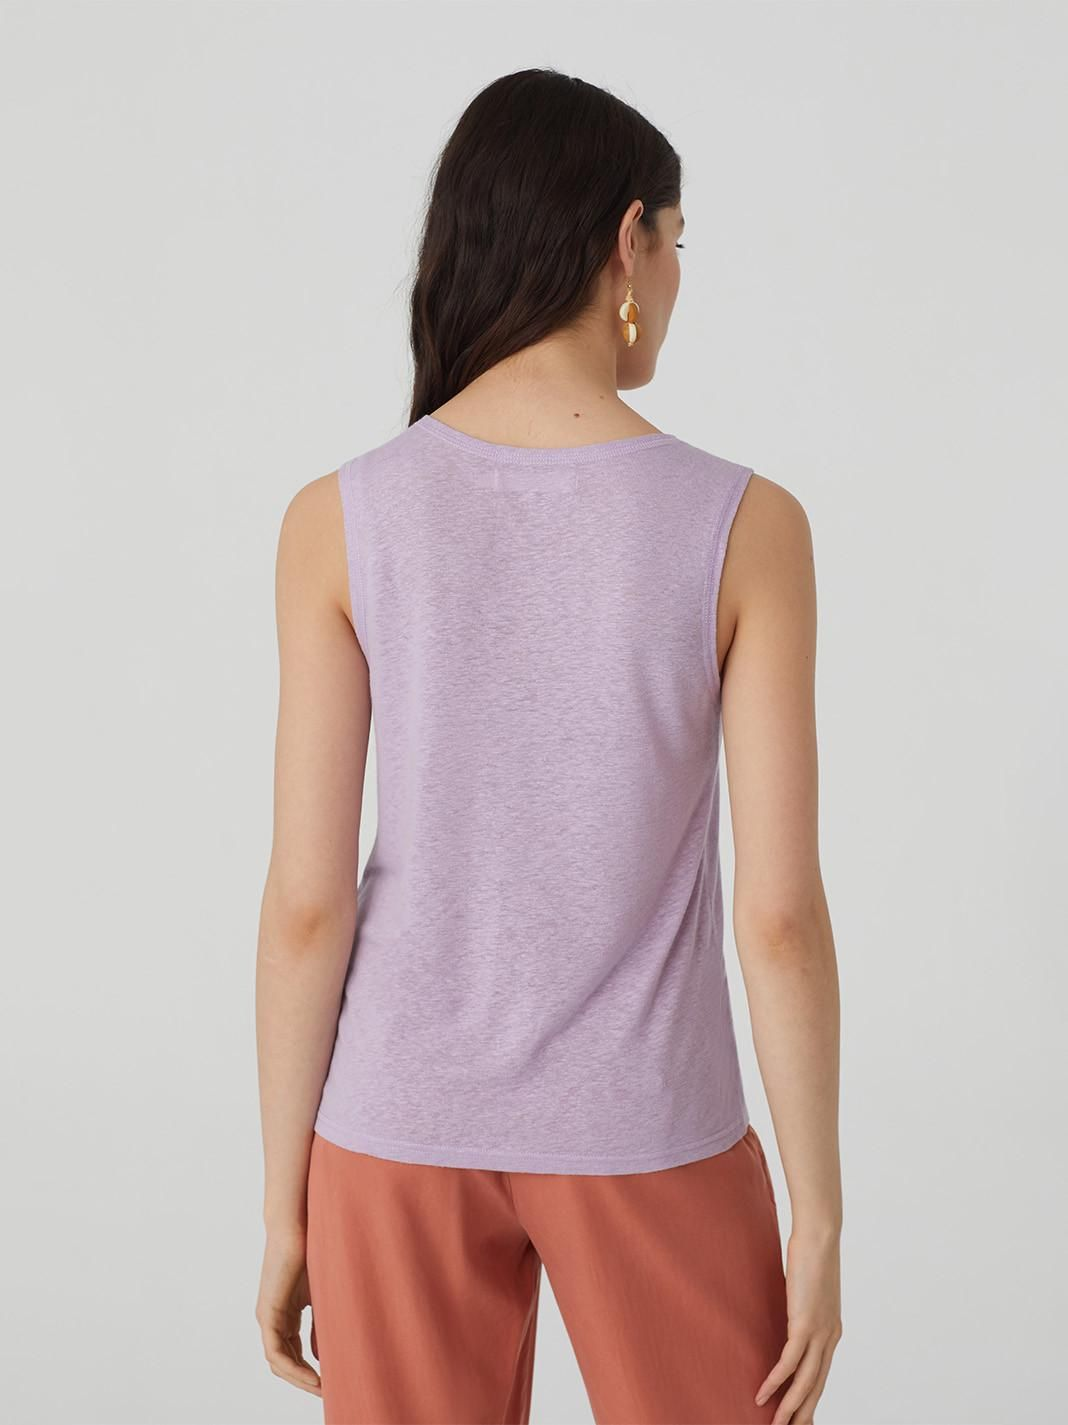 Linen Top With Opening